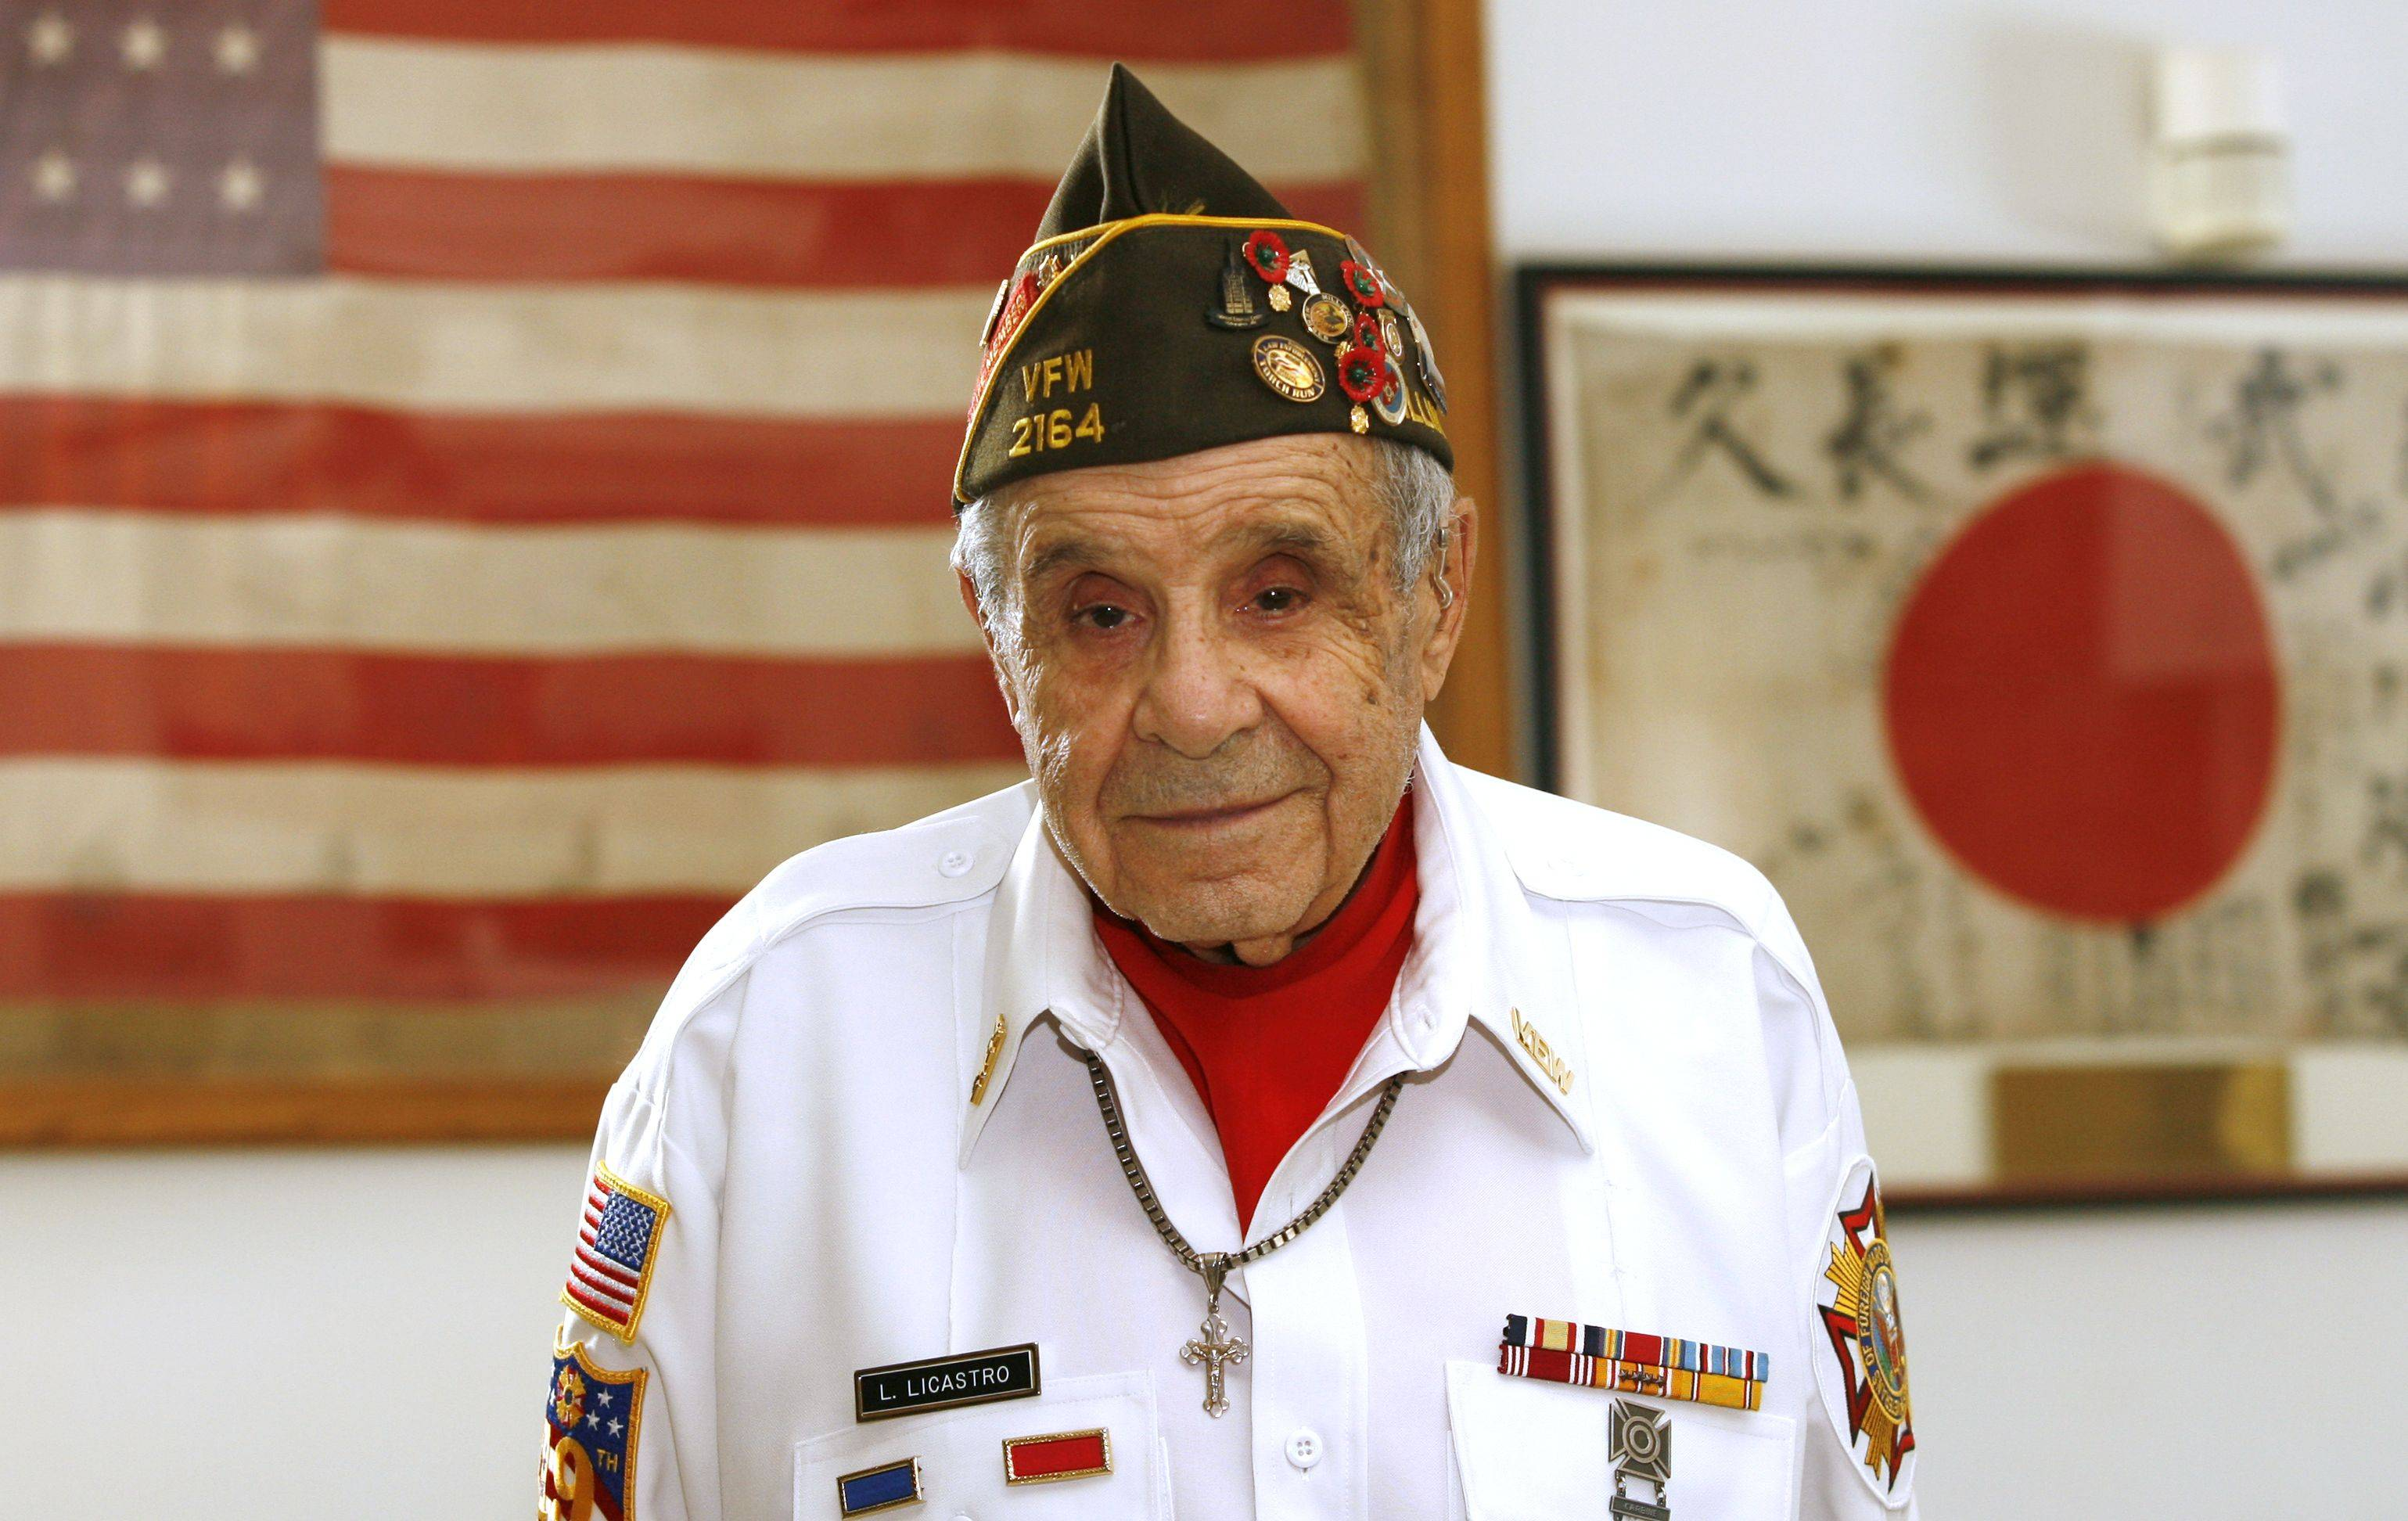 """The burning ships made so much black smoke,"" Louis Licastro, 93, said of the attack on Pearl Harbor. The Glen Ellyn veteran served at Hickam Field."